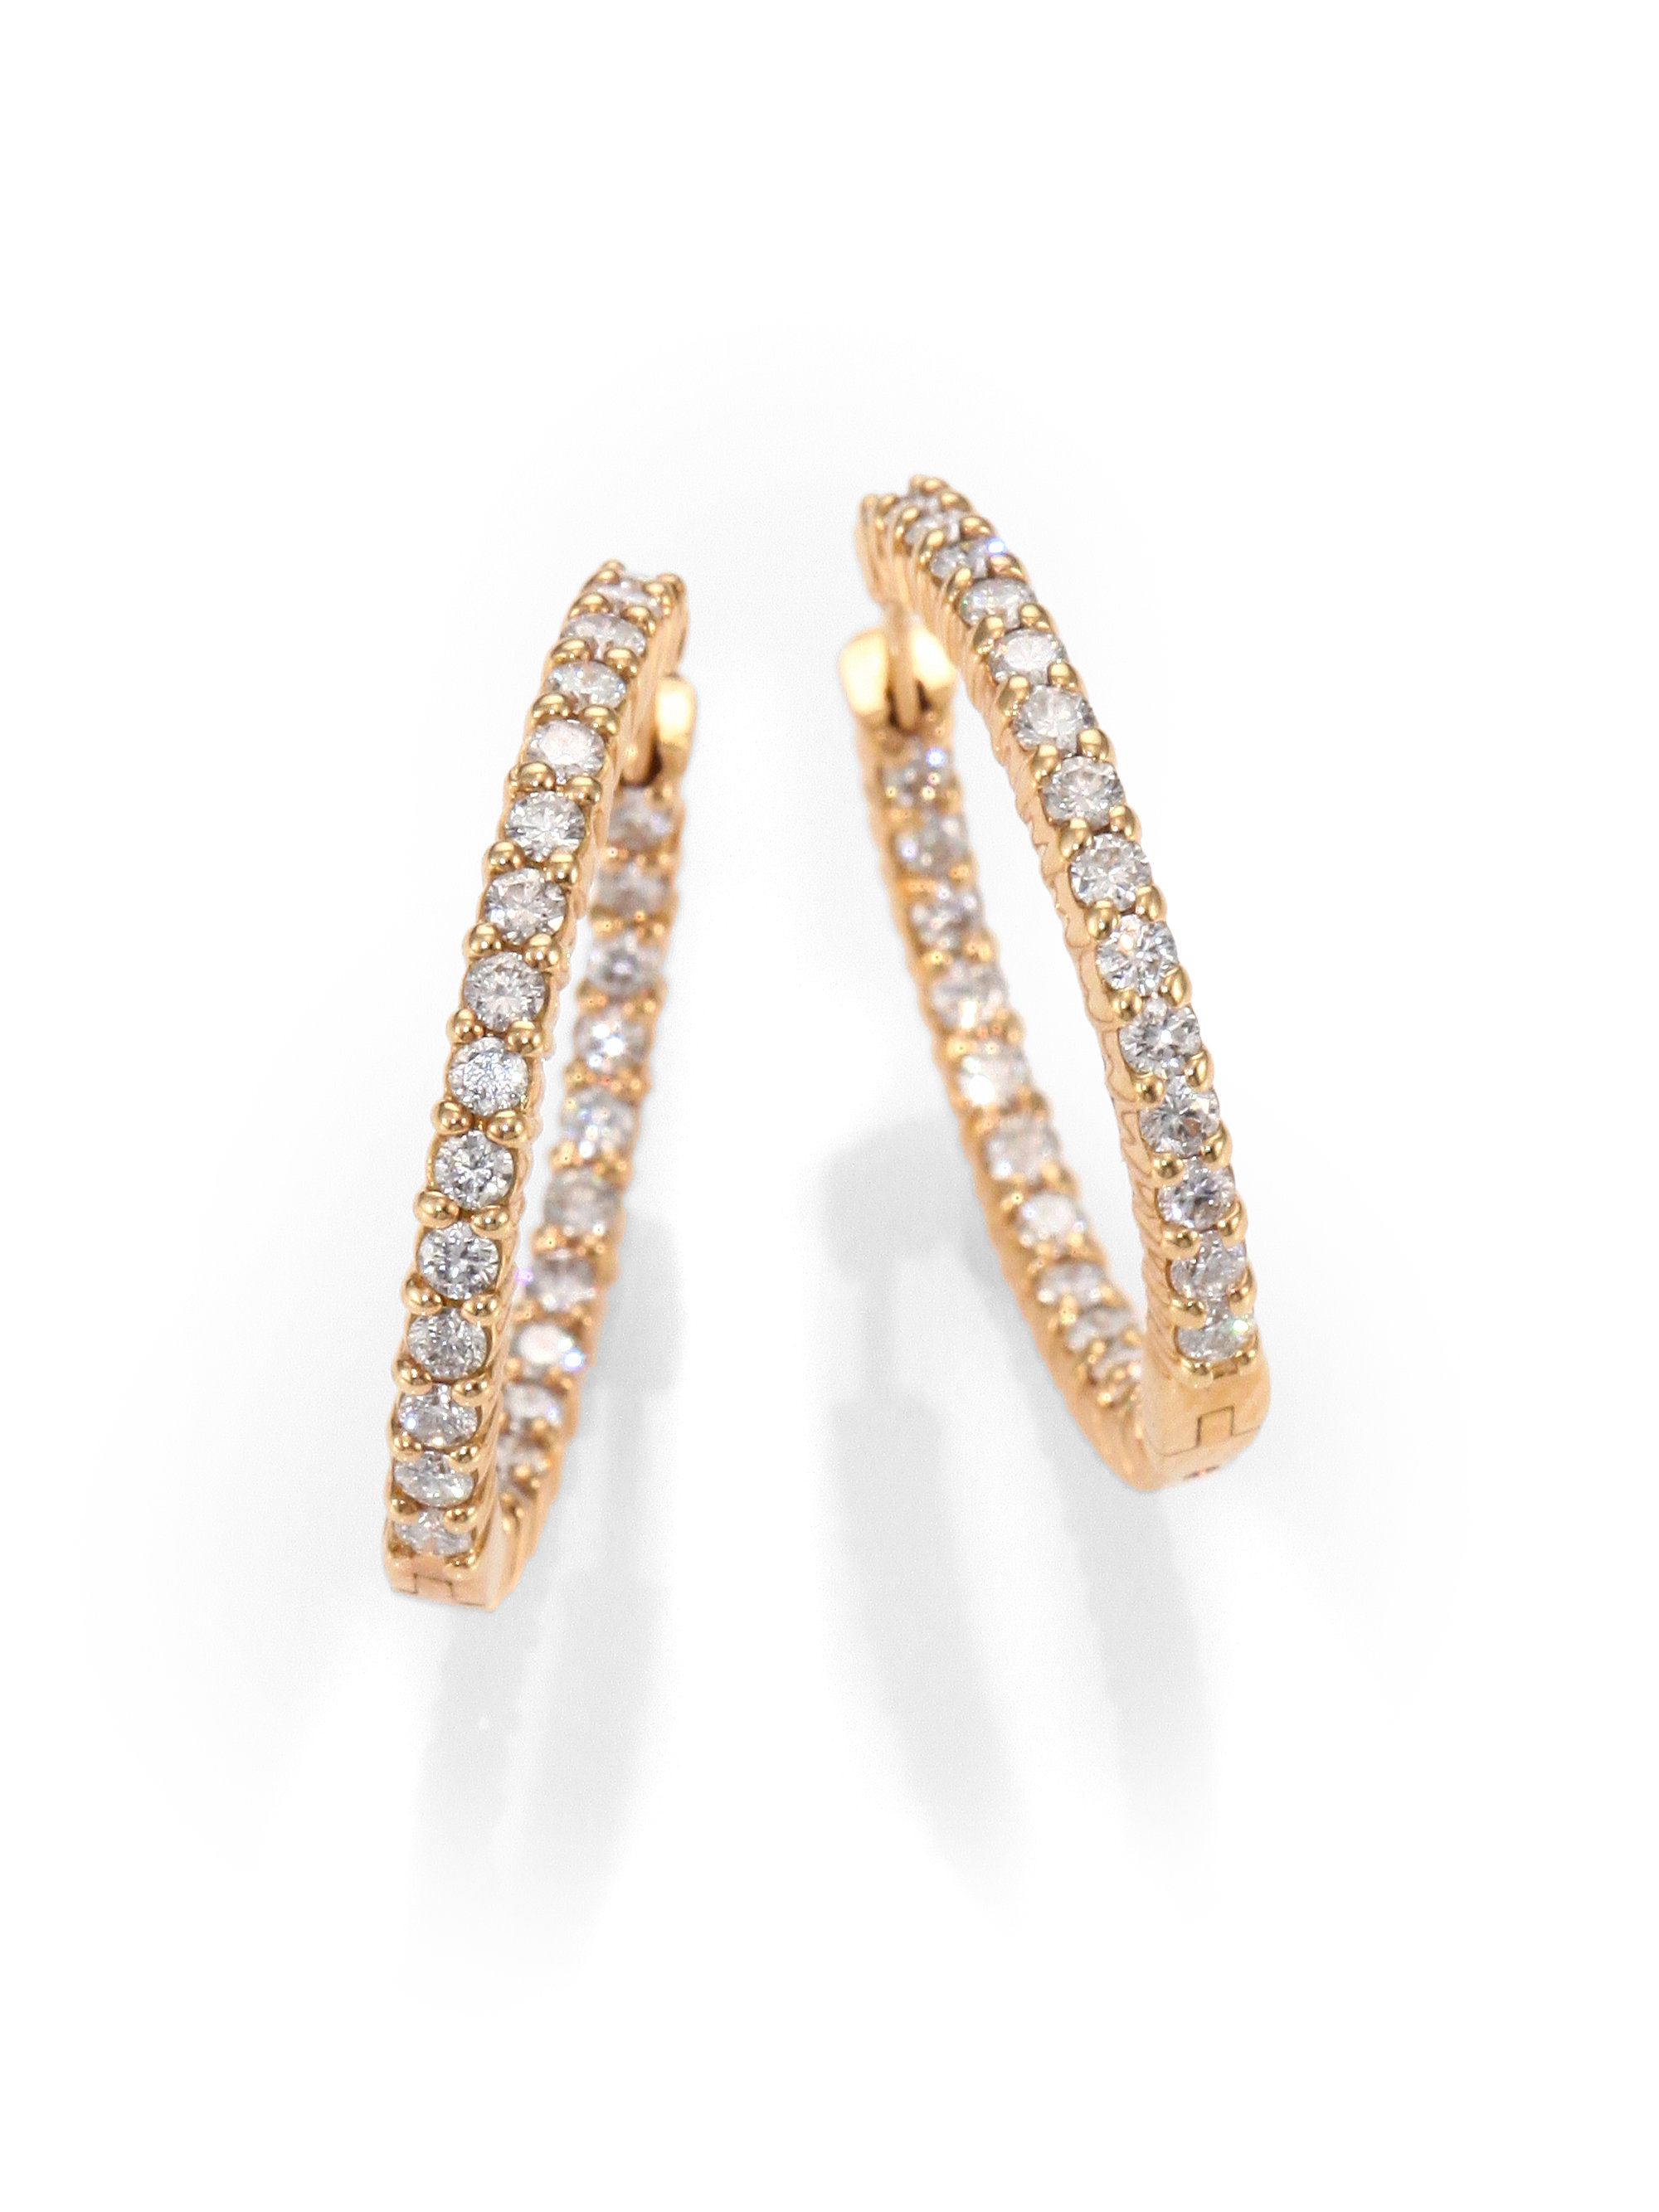 Gallery Previously Sold At Saks Fifth Avenue Women S Gold Hoop Earrings